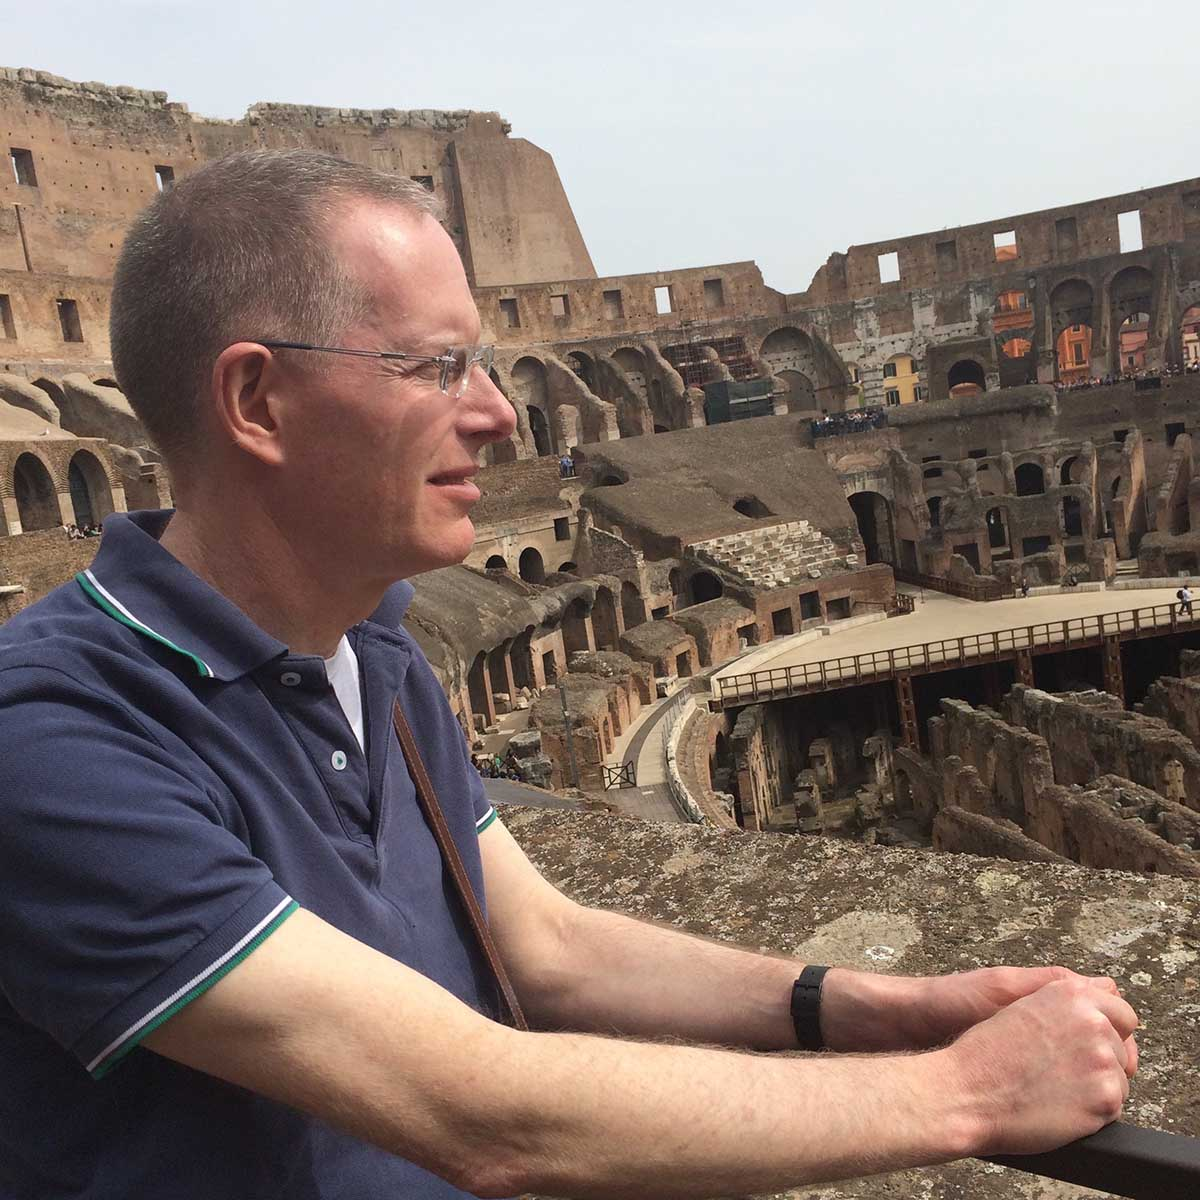 Sean Quinlan at the Coliseum in Rome, Italy